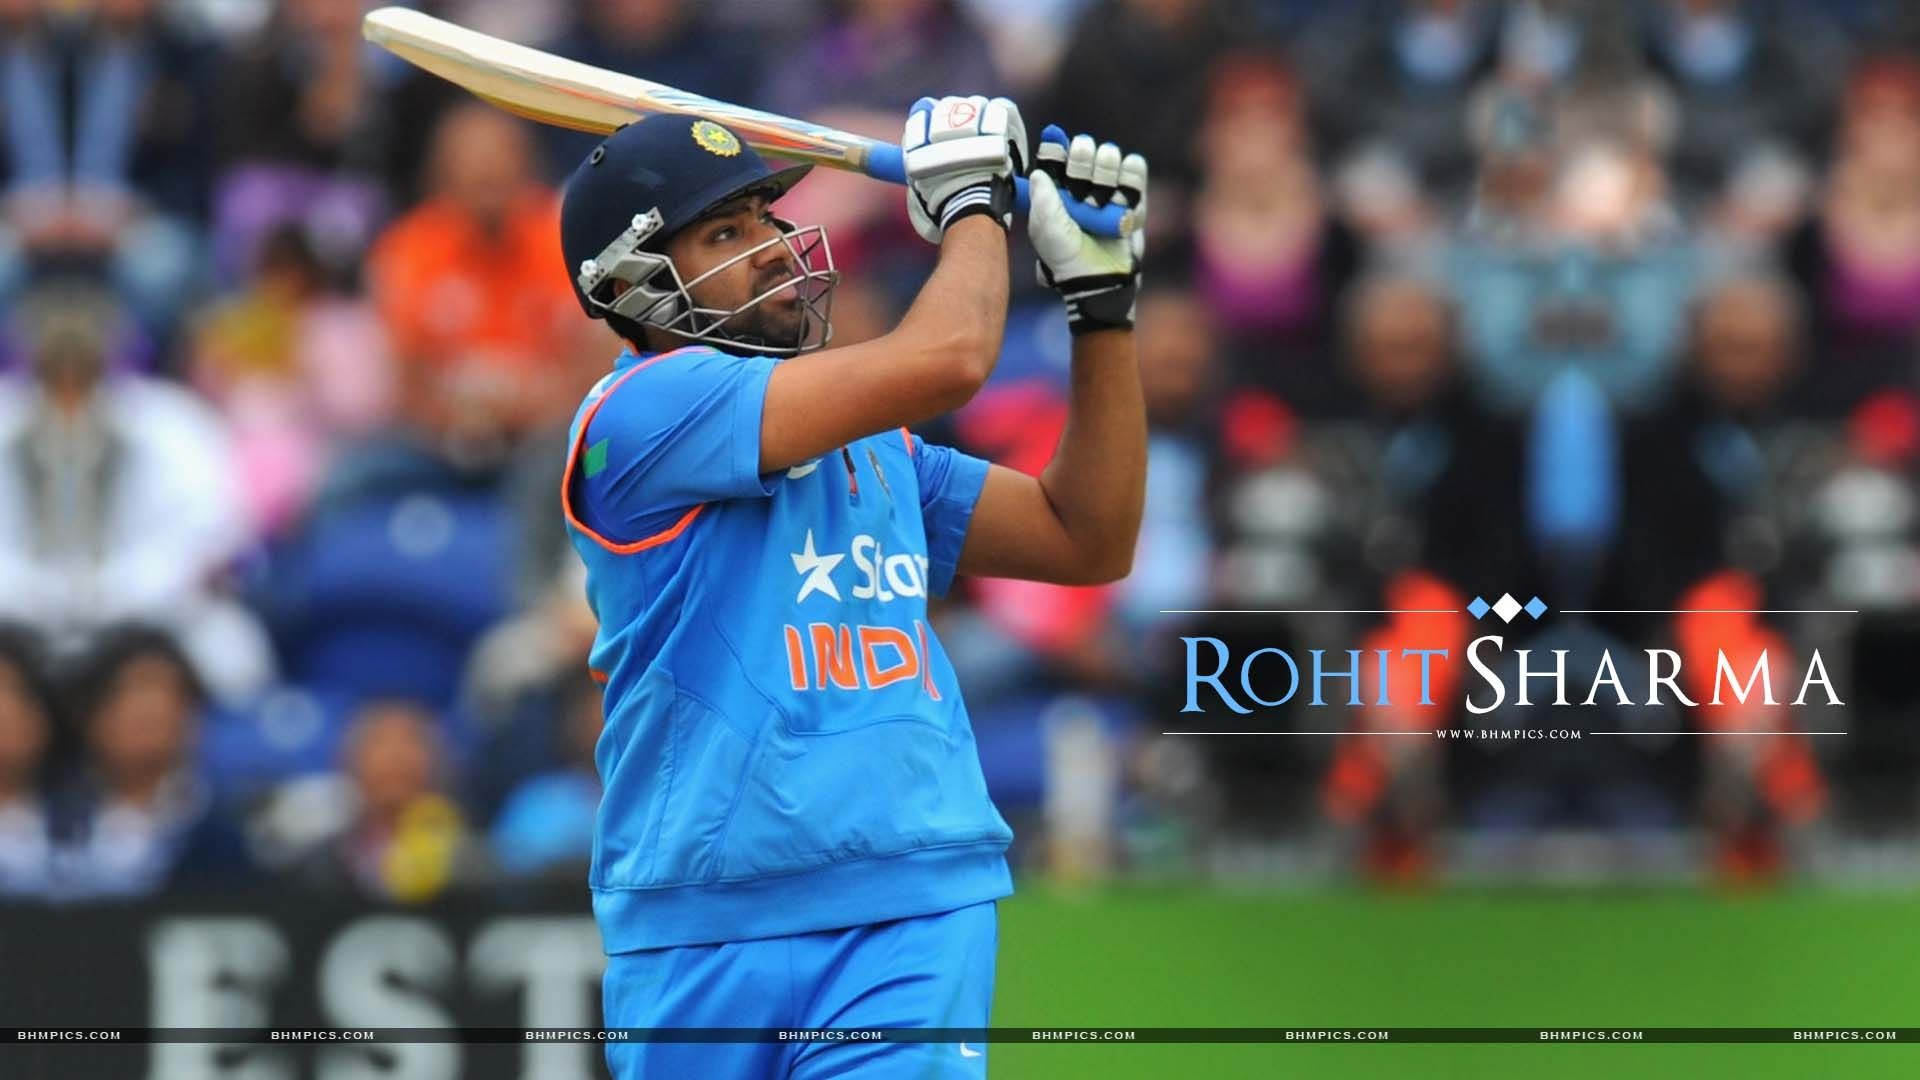 Rohit Sharma Wallpapers - Top Free Rohit Sharma Backgrounds ...